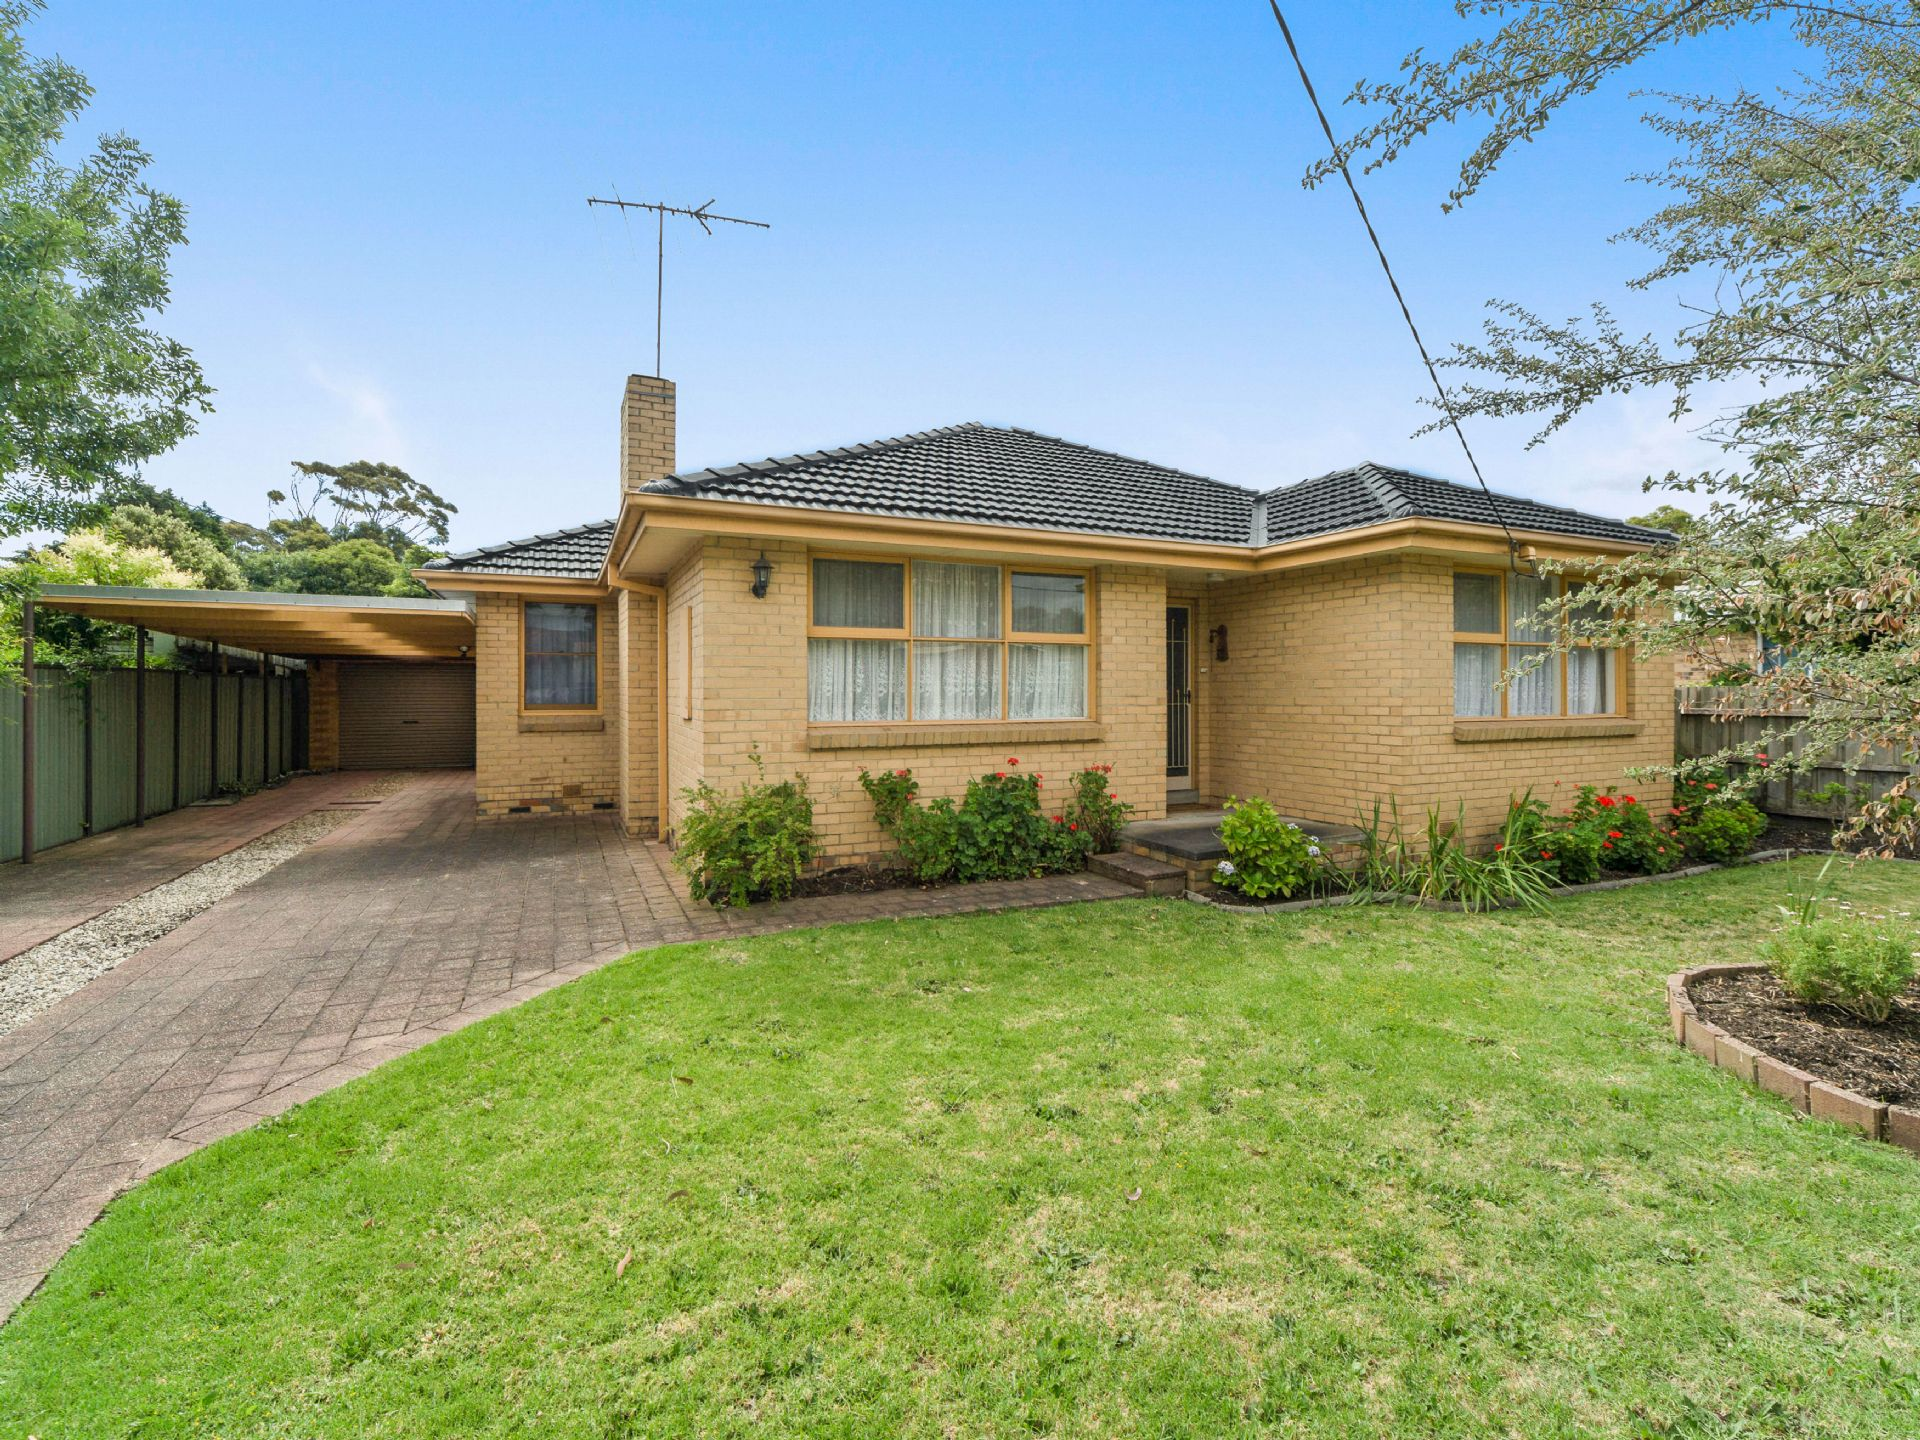 17A Duncan Avenue, SEAFORD, VIC, 3198 - Image